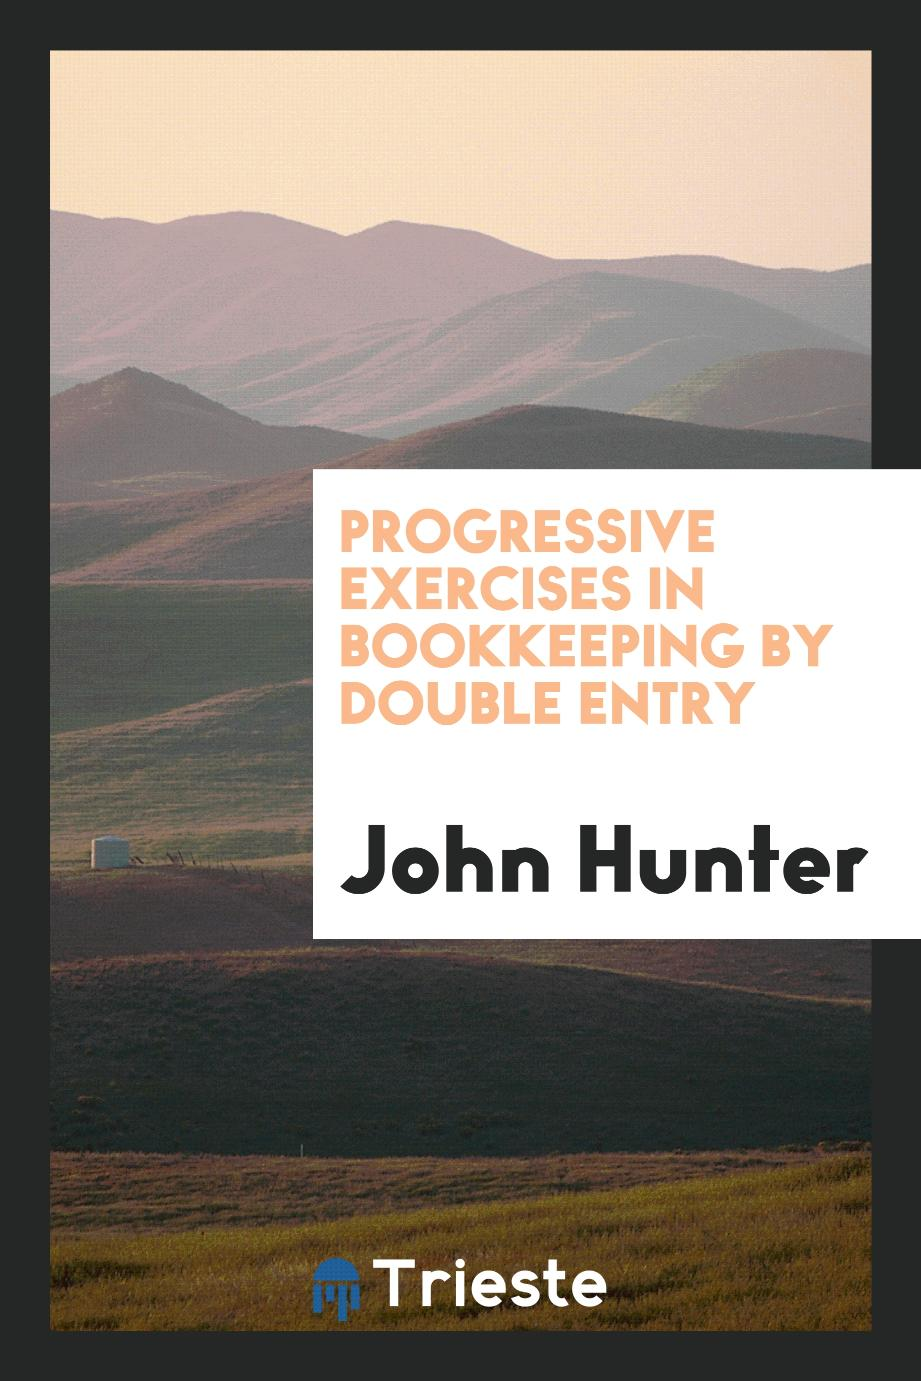 Progressive exercises in bookkeeping by double entry